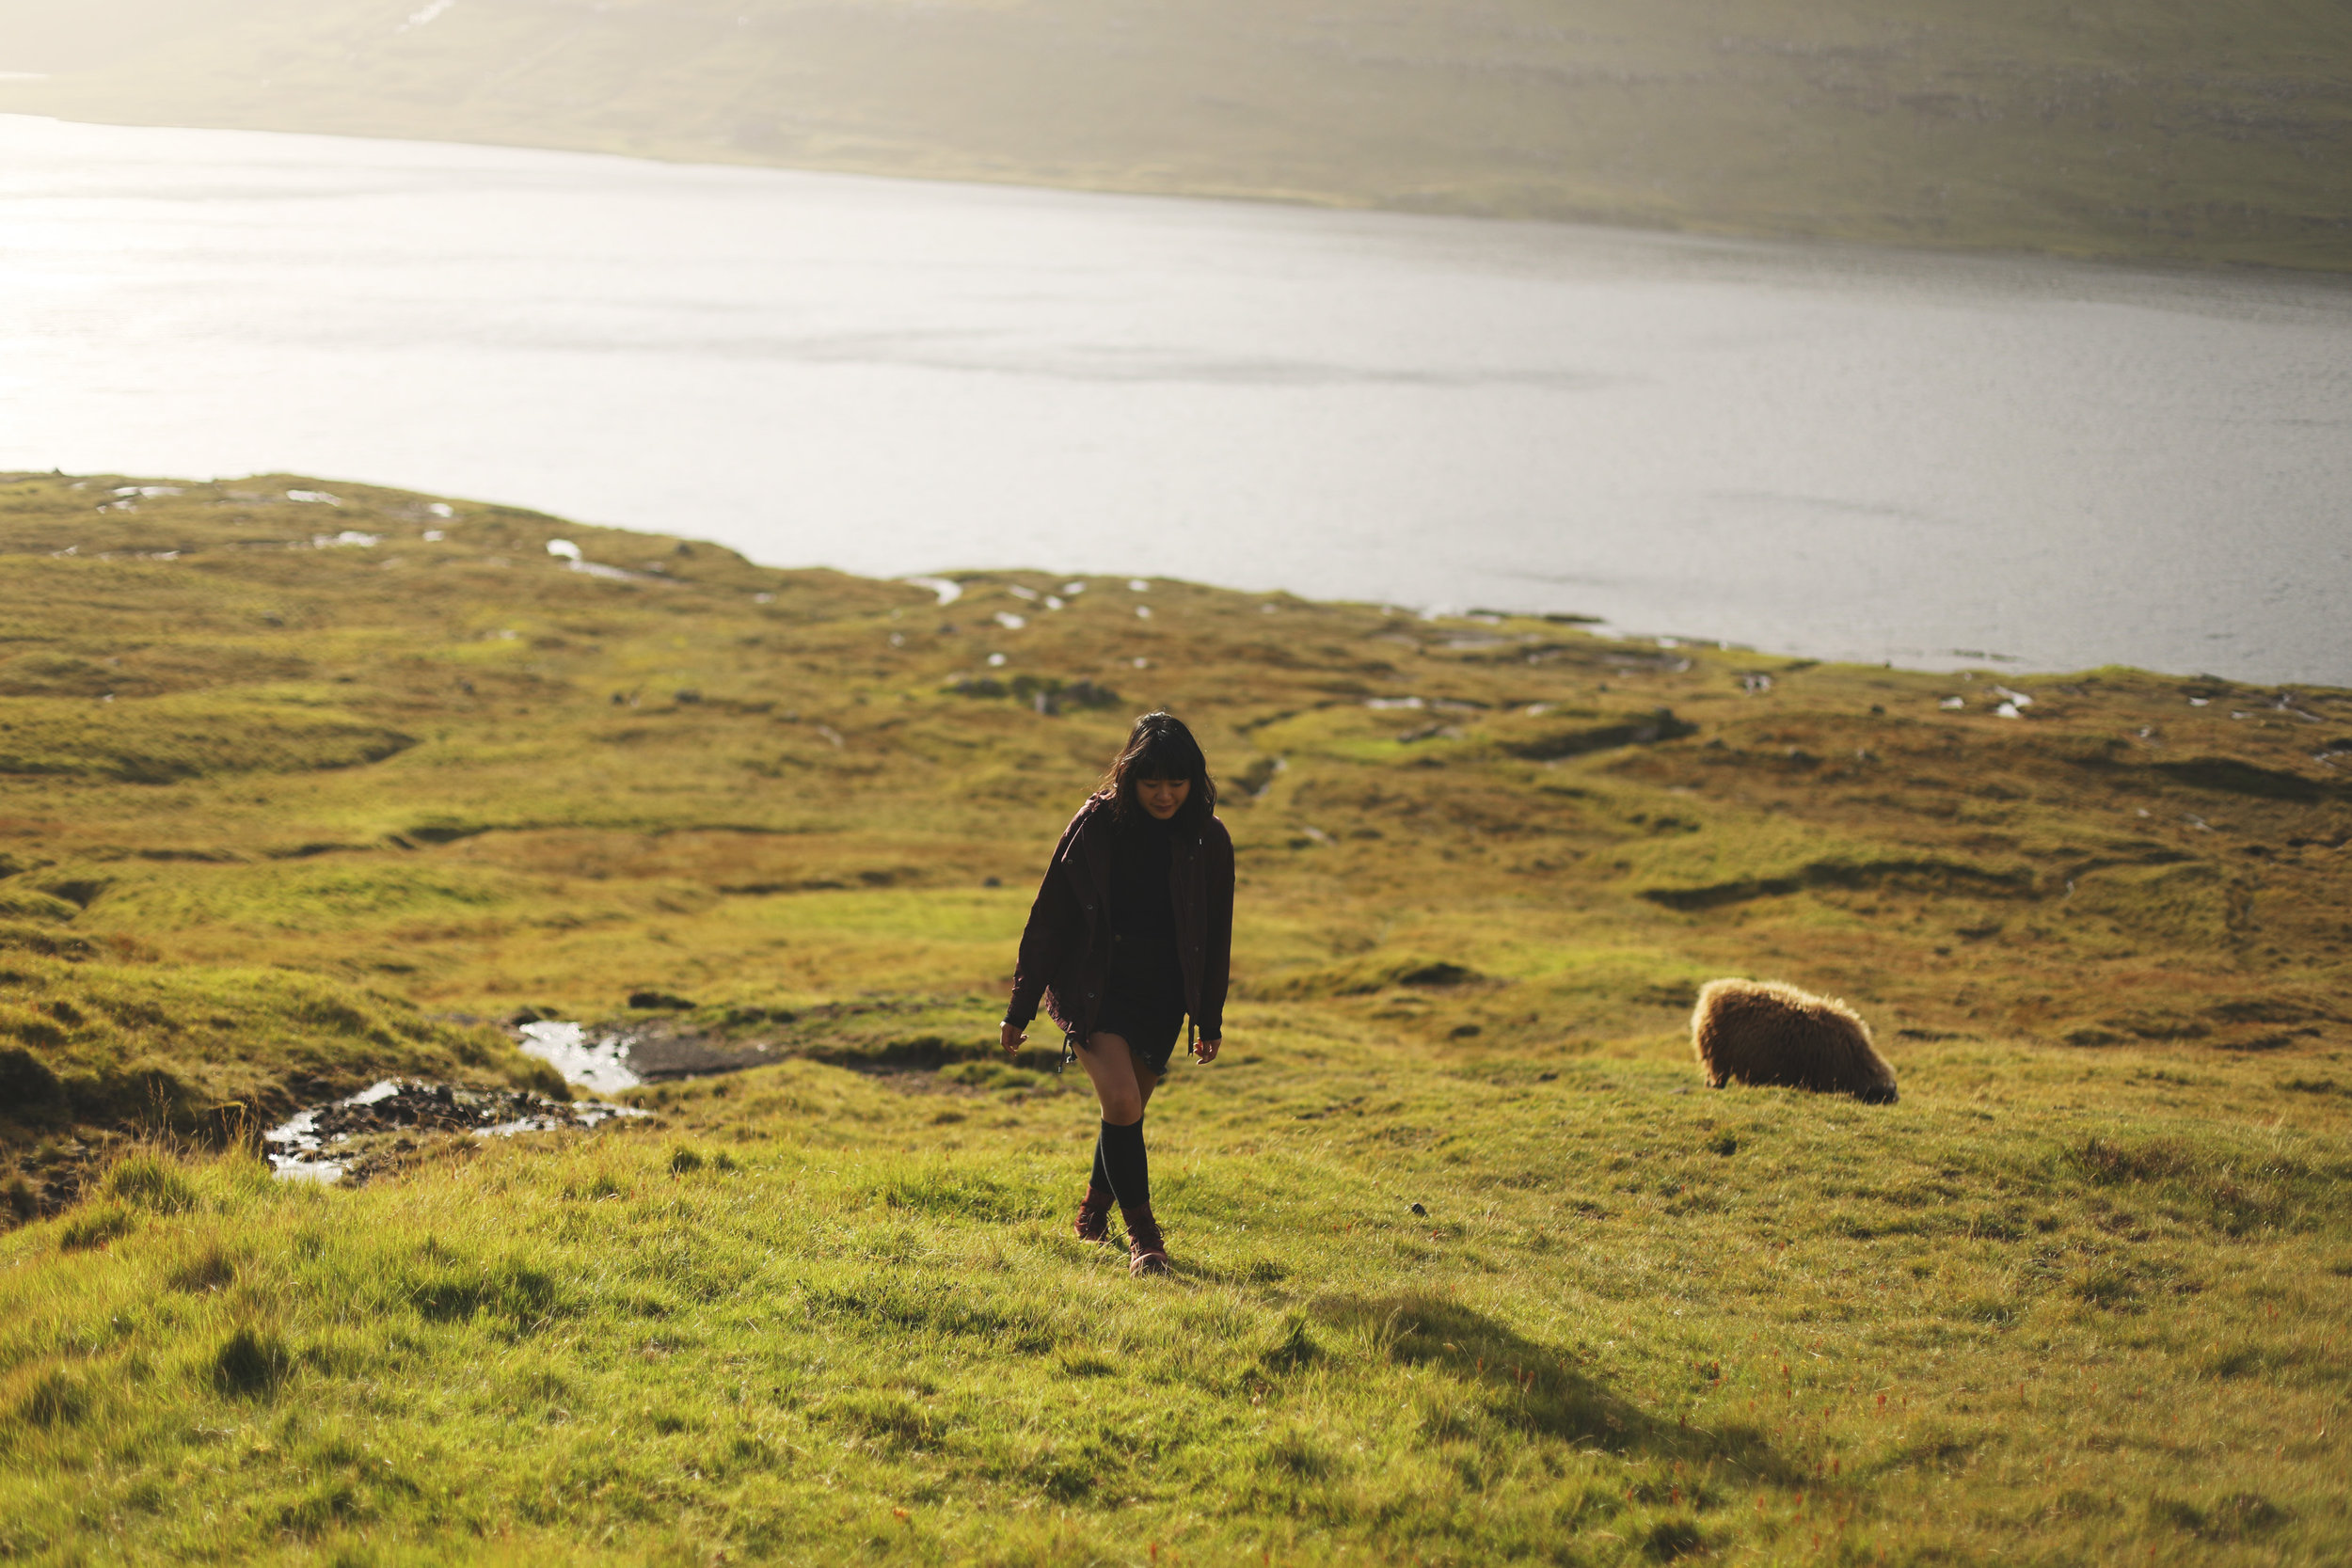 Hiking alongside some local sheep as the sun sets upon the lake.